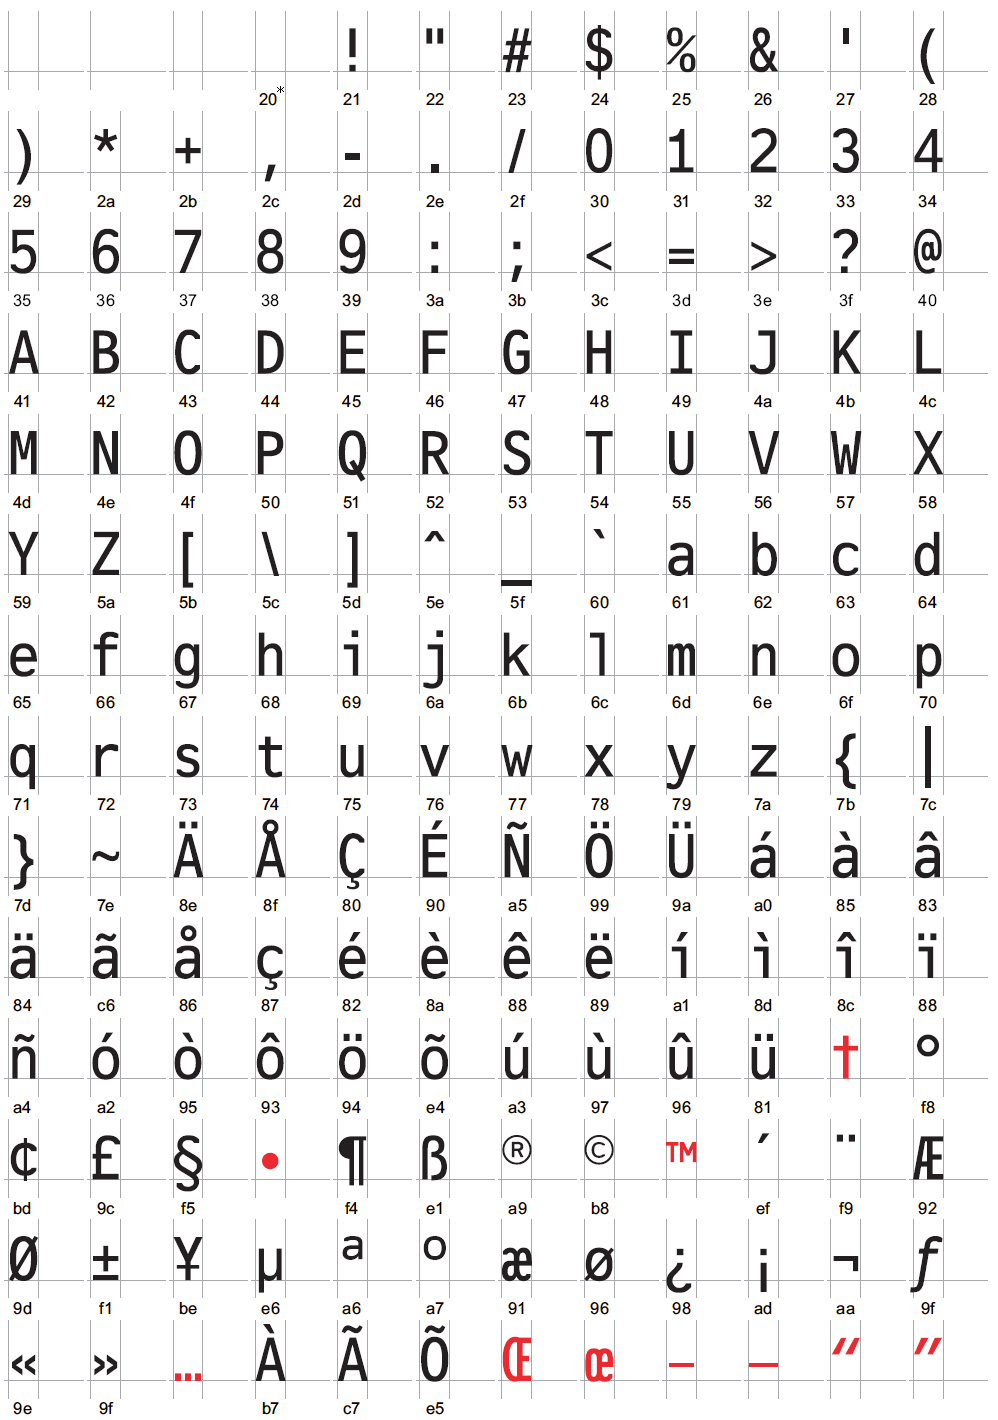 625 List Of Exclusive Ascii Stroke Font Characters Stroke Font